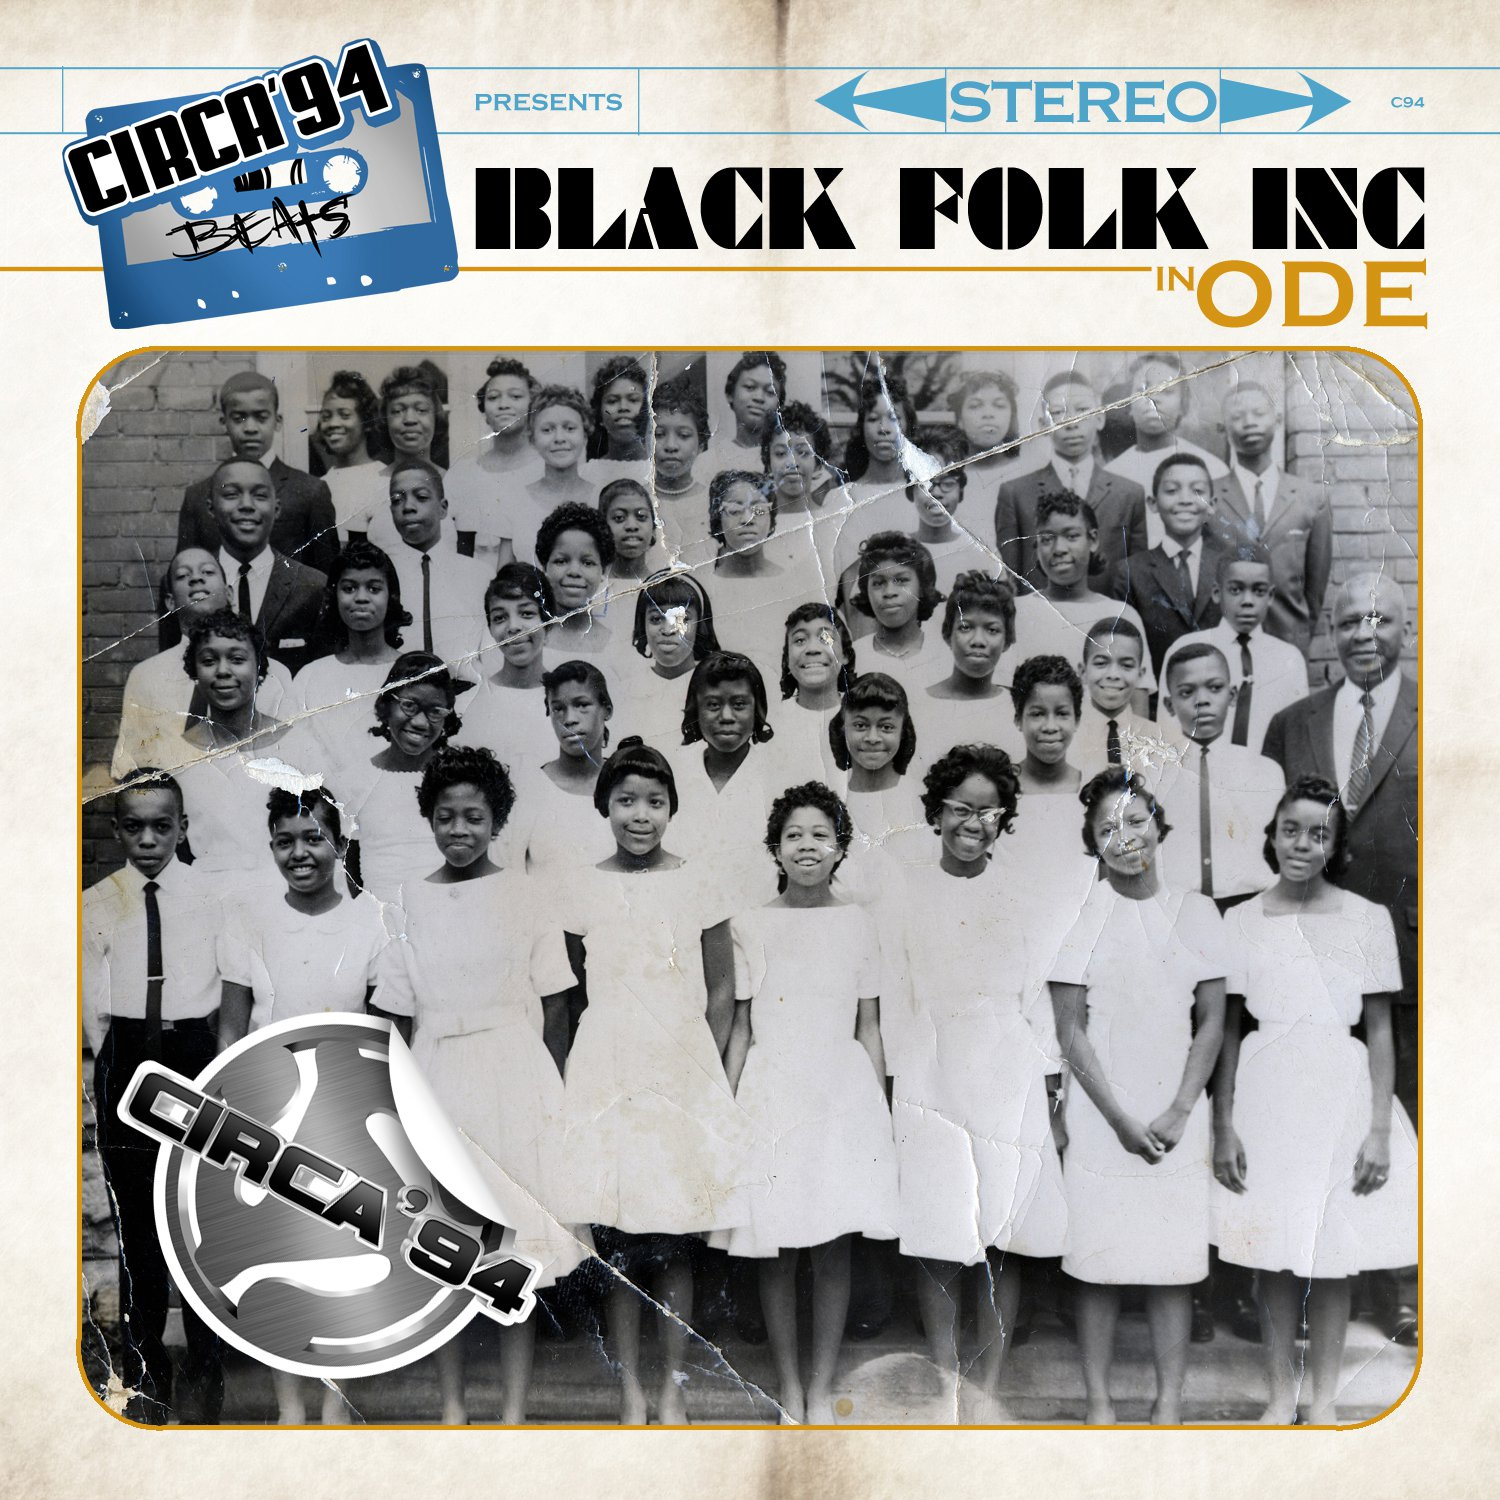 Circa 94 Beats presents Black Folk Inc. in ODE